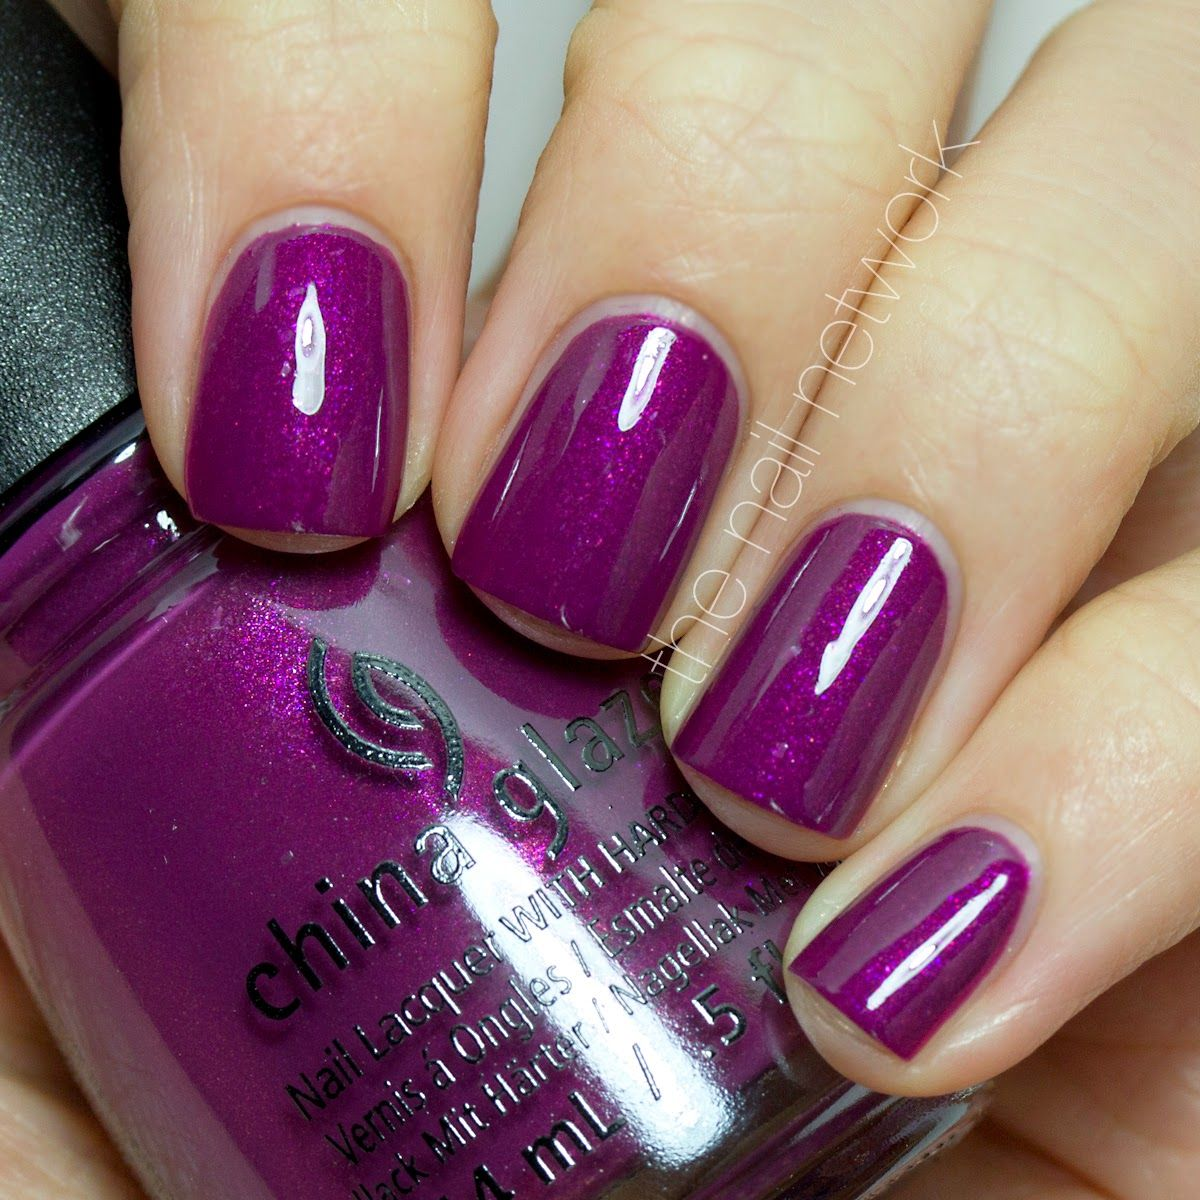 All china glaze colors / Riverb nation